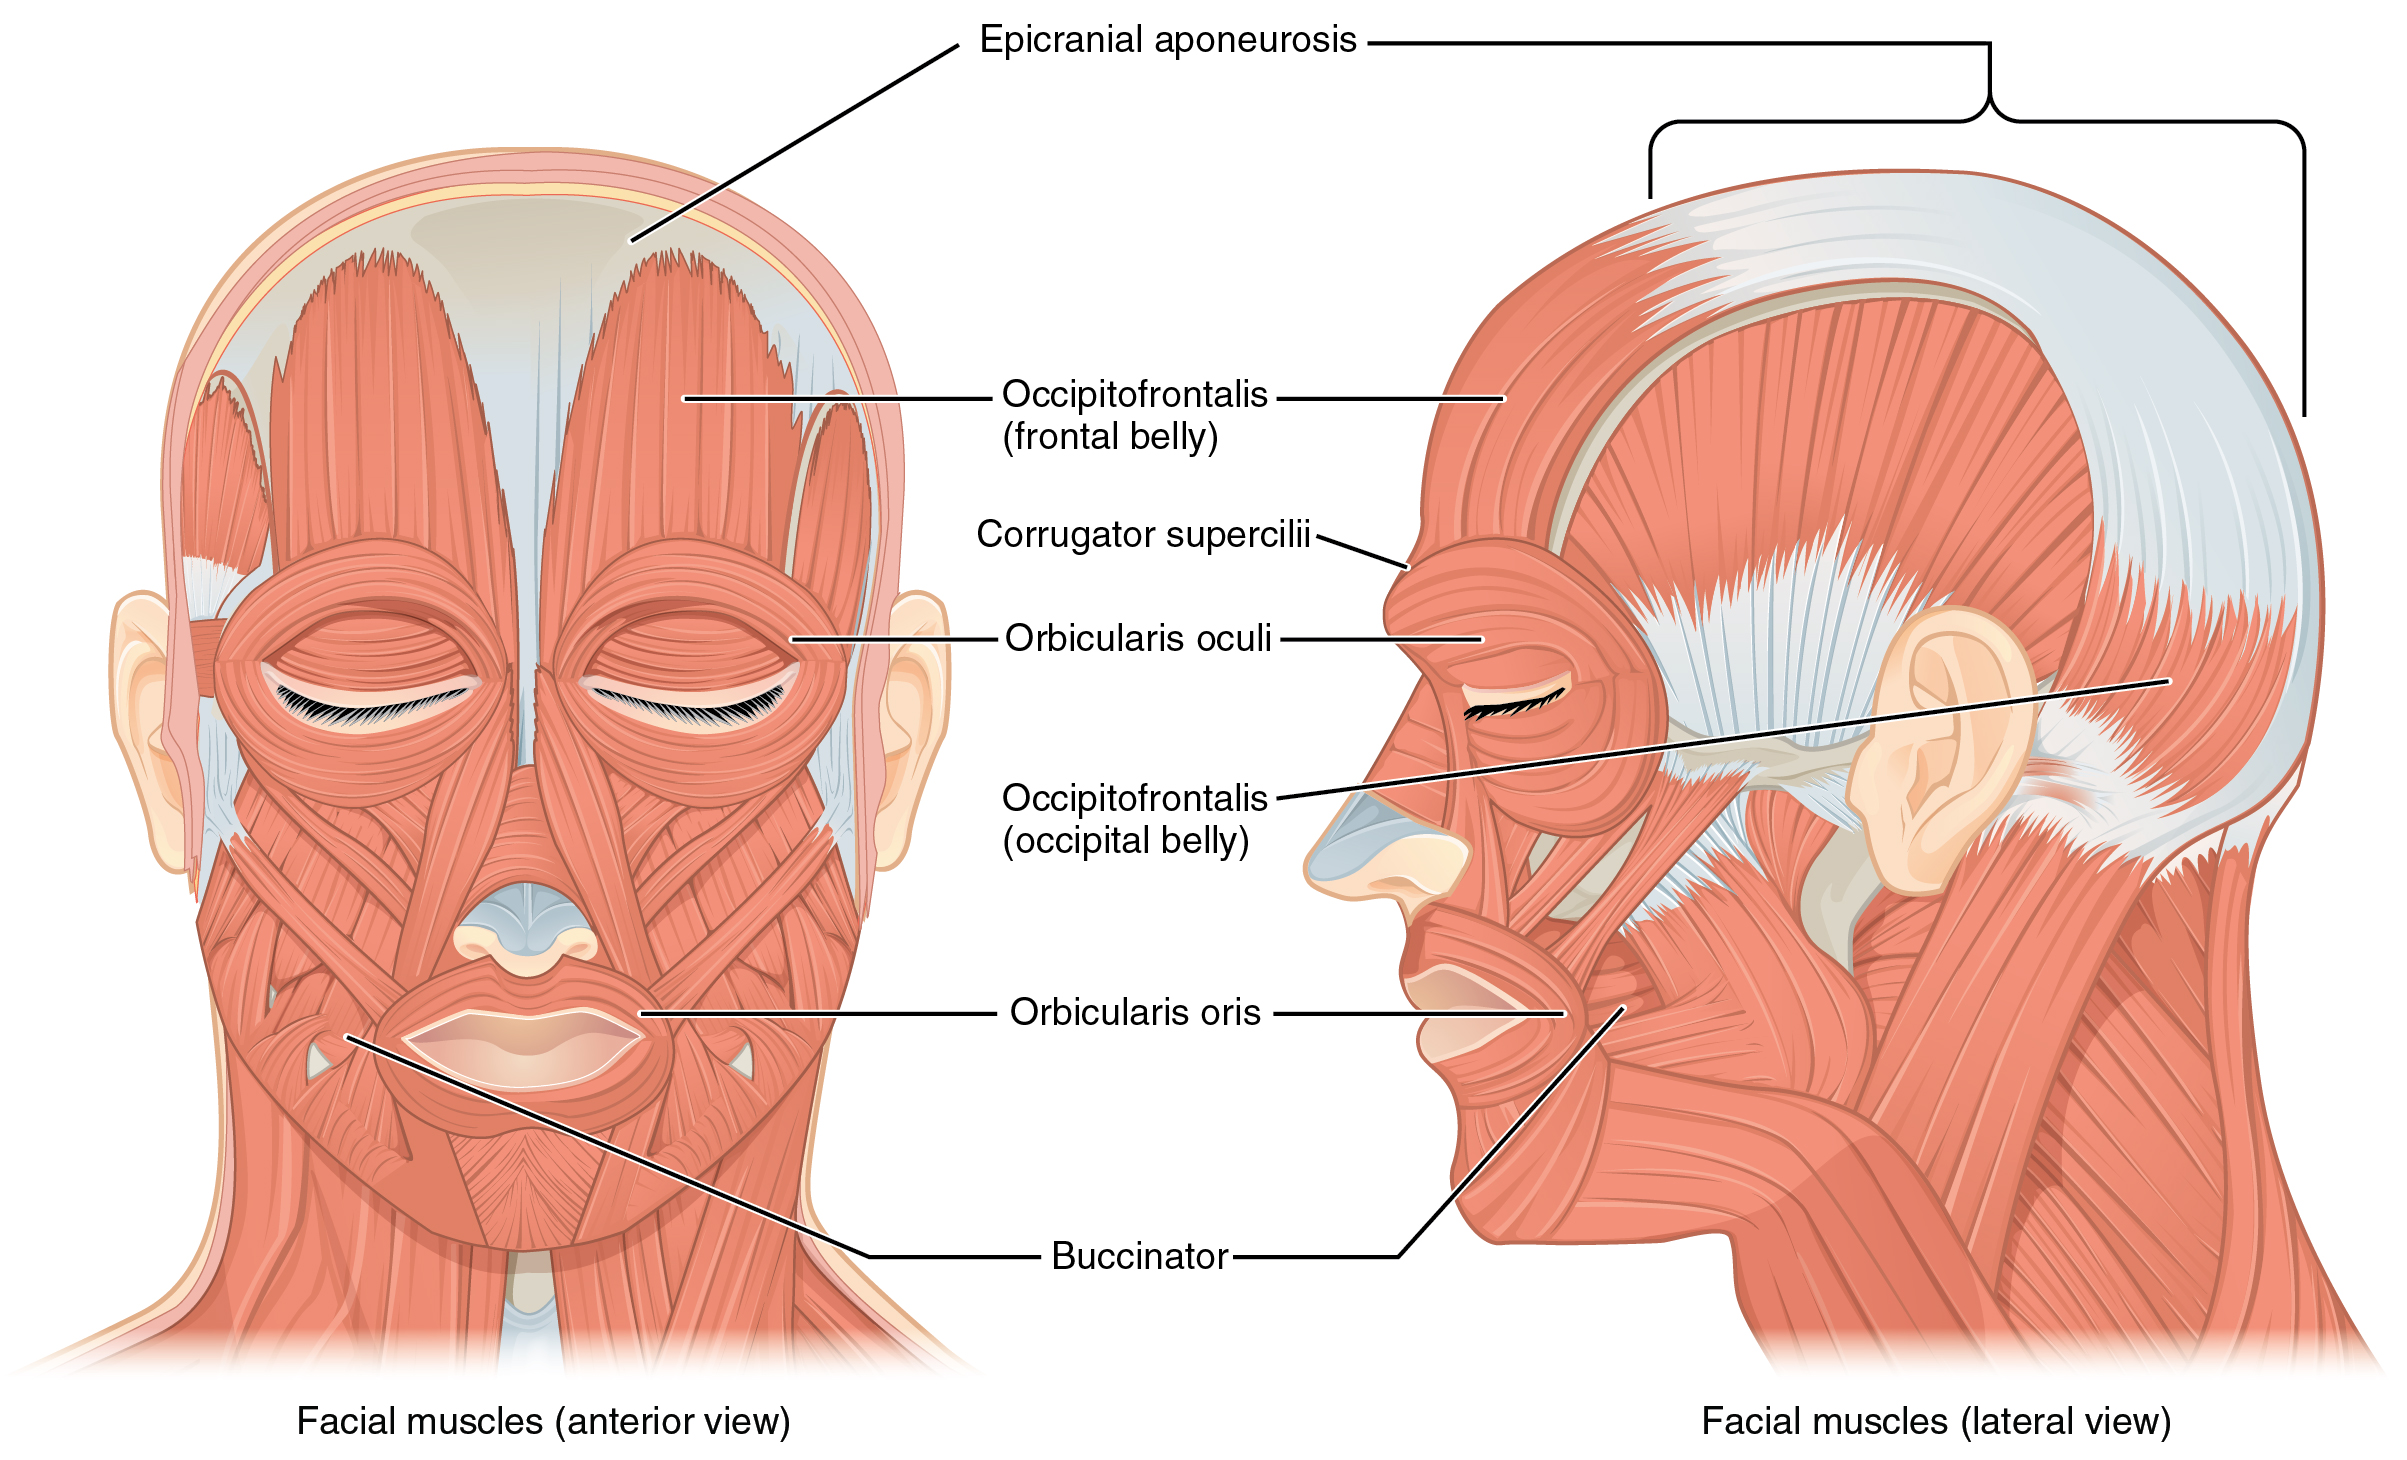 The muscles of the head and neck human anatomy and physiology lab located at httpscnxresources9b369a7466ec2ef44a97decc8de15593c7189e131106frontandsideviewsofthemusclesoffacialexpressionsg ccuart